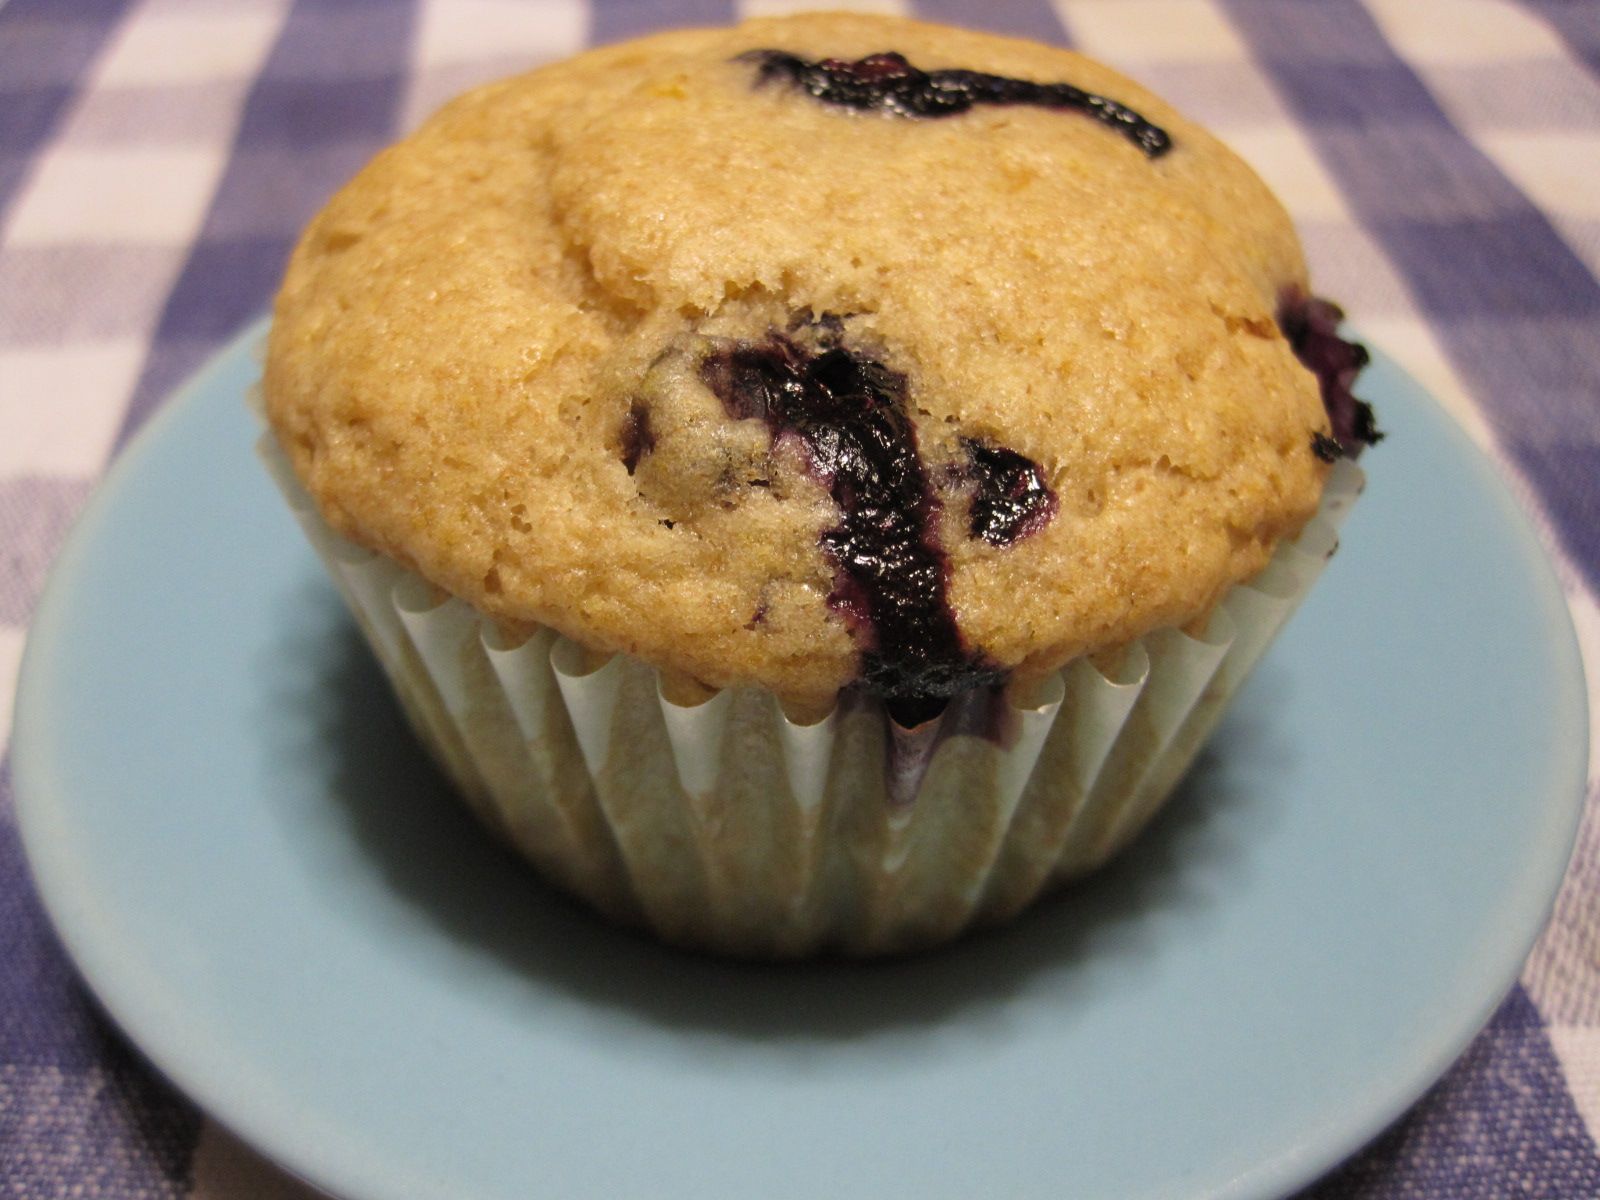 Musical Assumptions: Vegan Blueberry Lemon Almond Milk Muffins